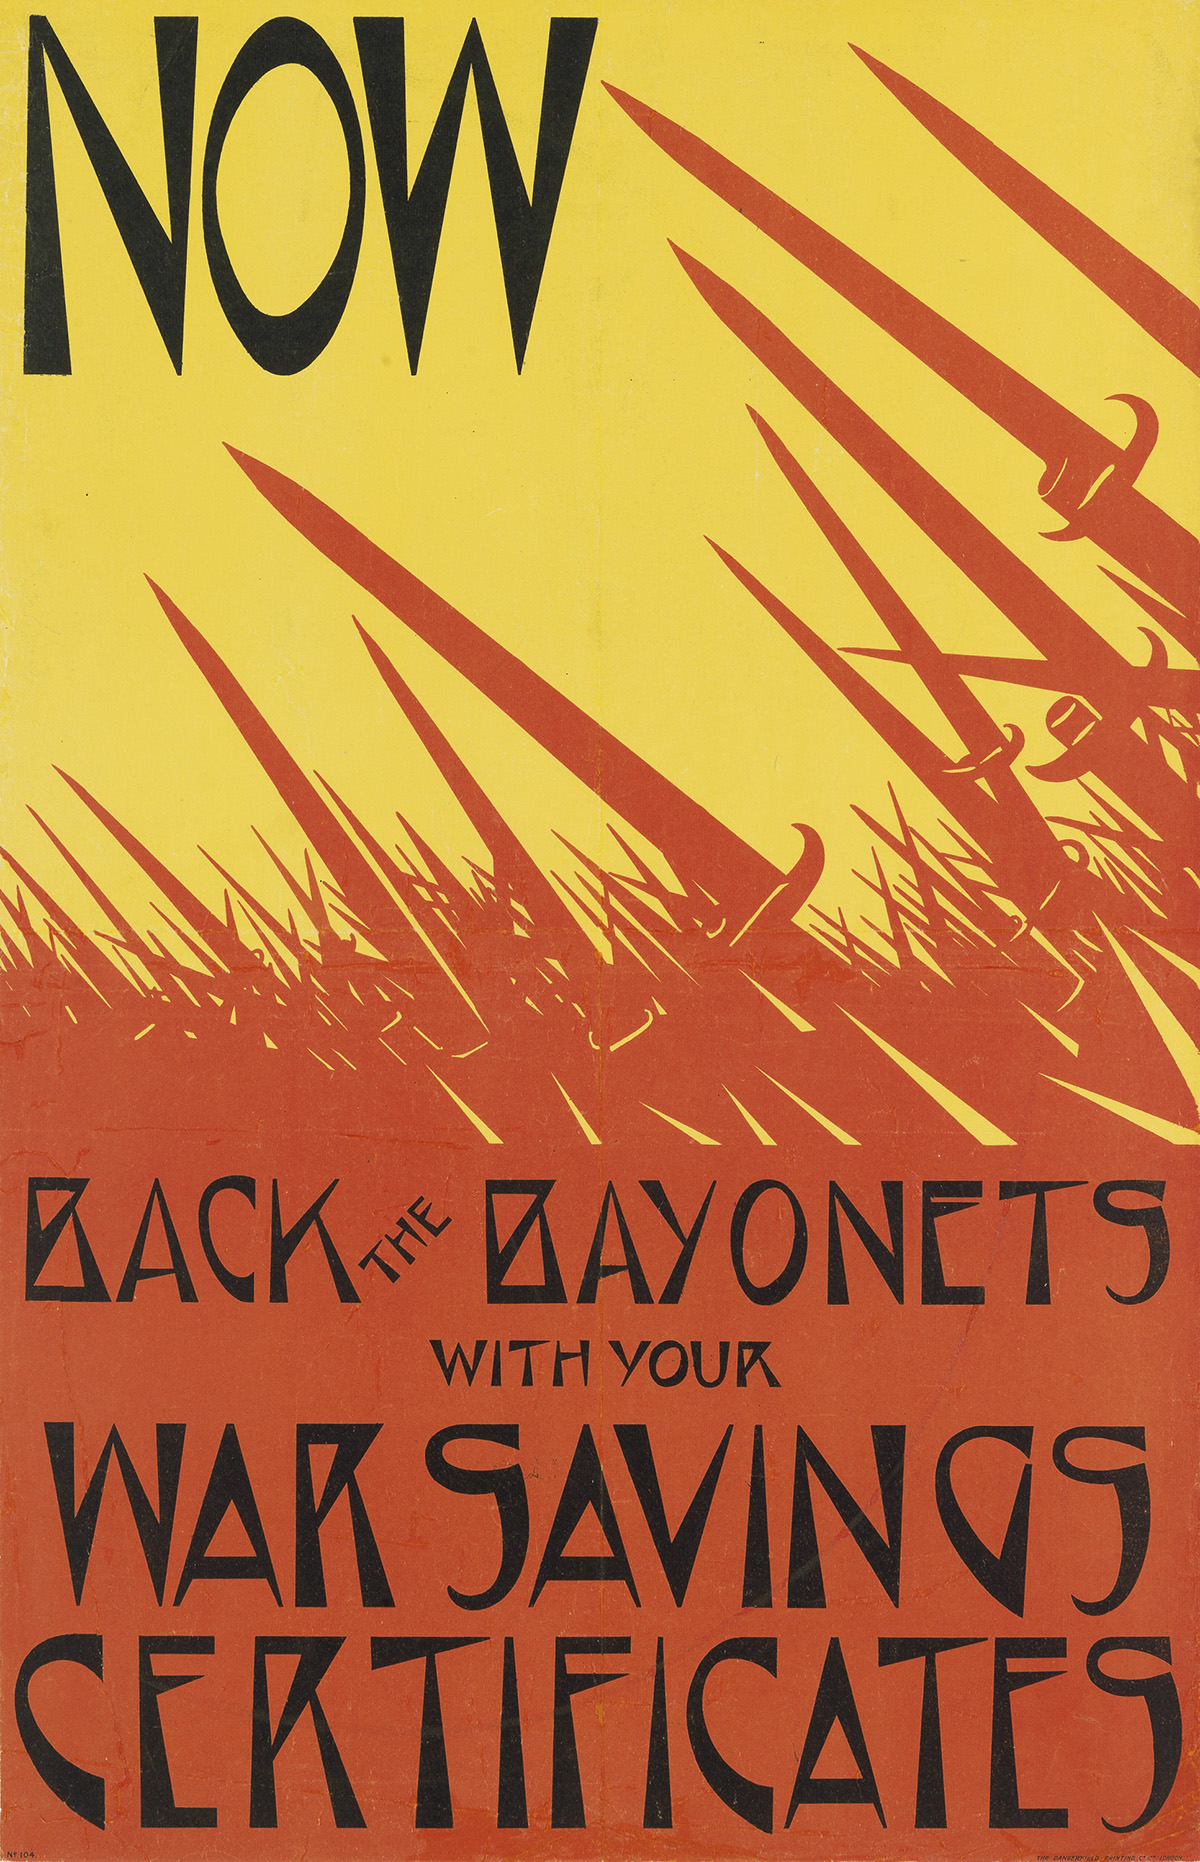 CHRISTOPHER-RW-NEVINSON-(1889-1946)-NOW--BACK-THE-BAYONETS-1